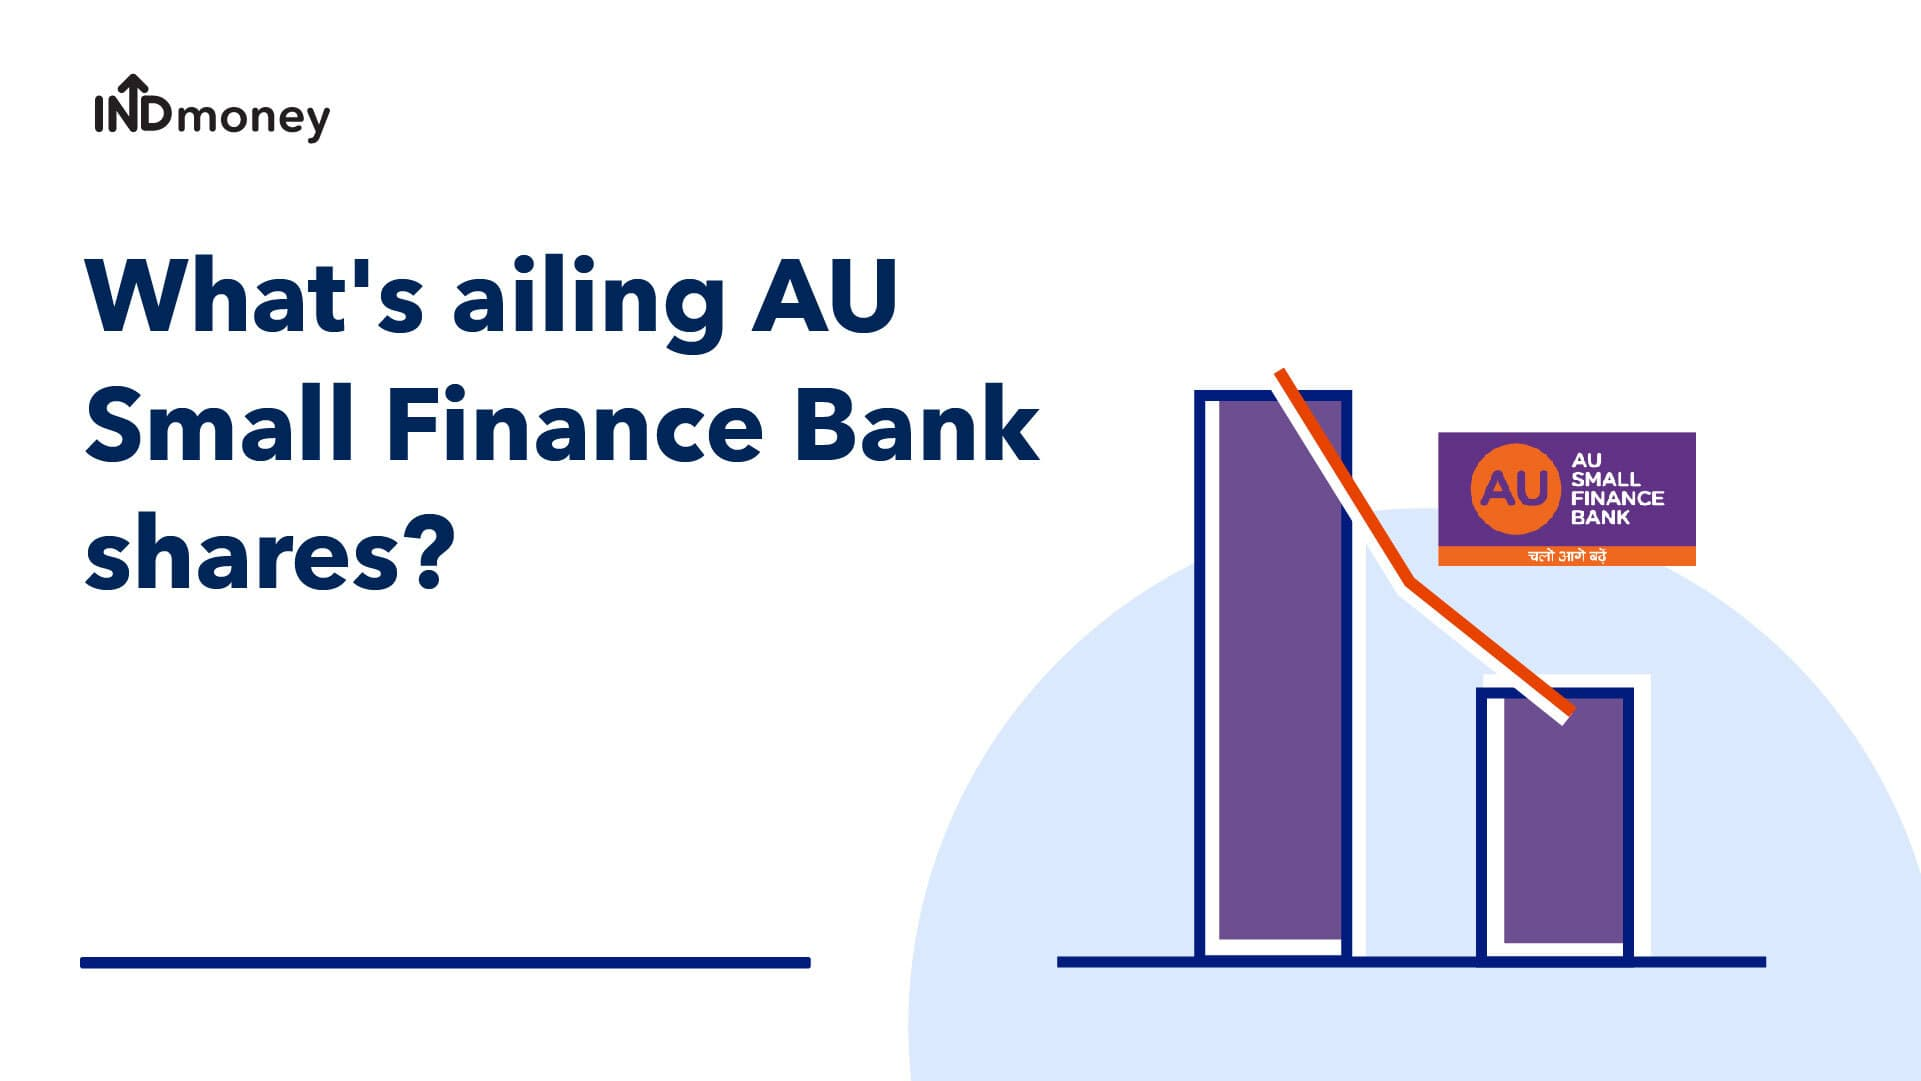 AU Small Finance Bank: From top level exits to concerns around disclosure, what's leading to the fall in share price